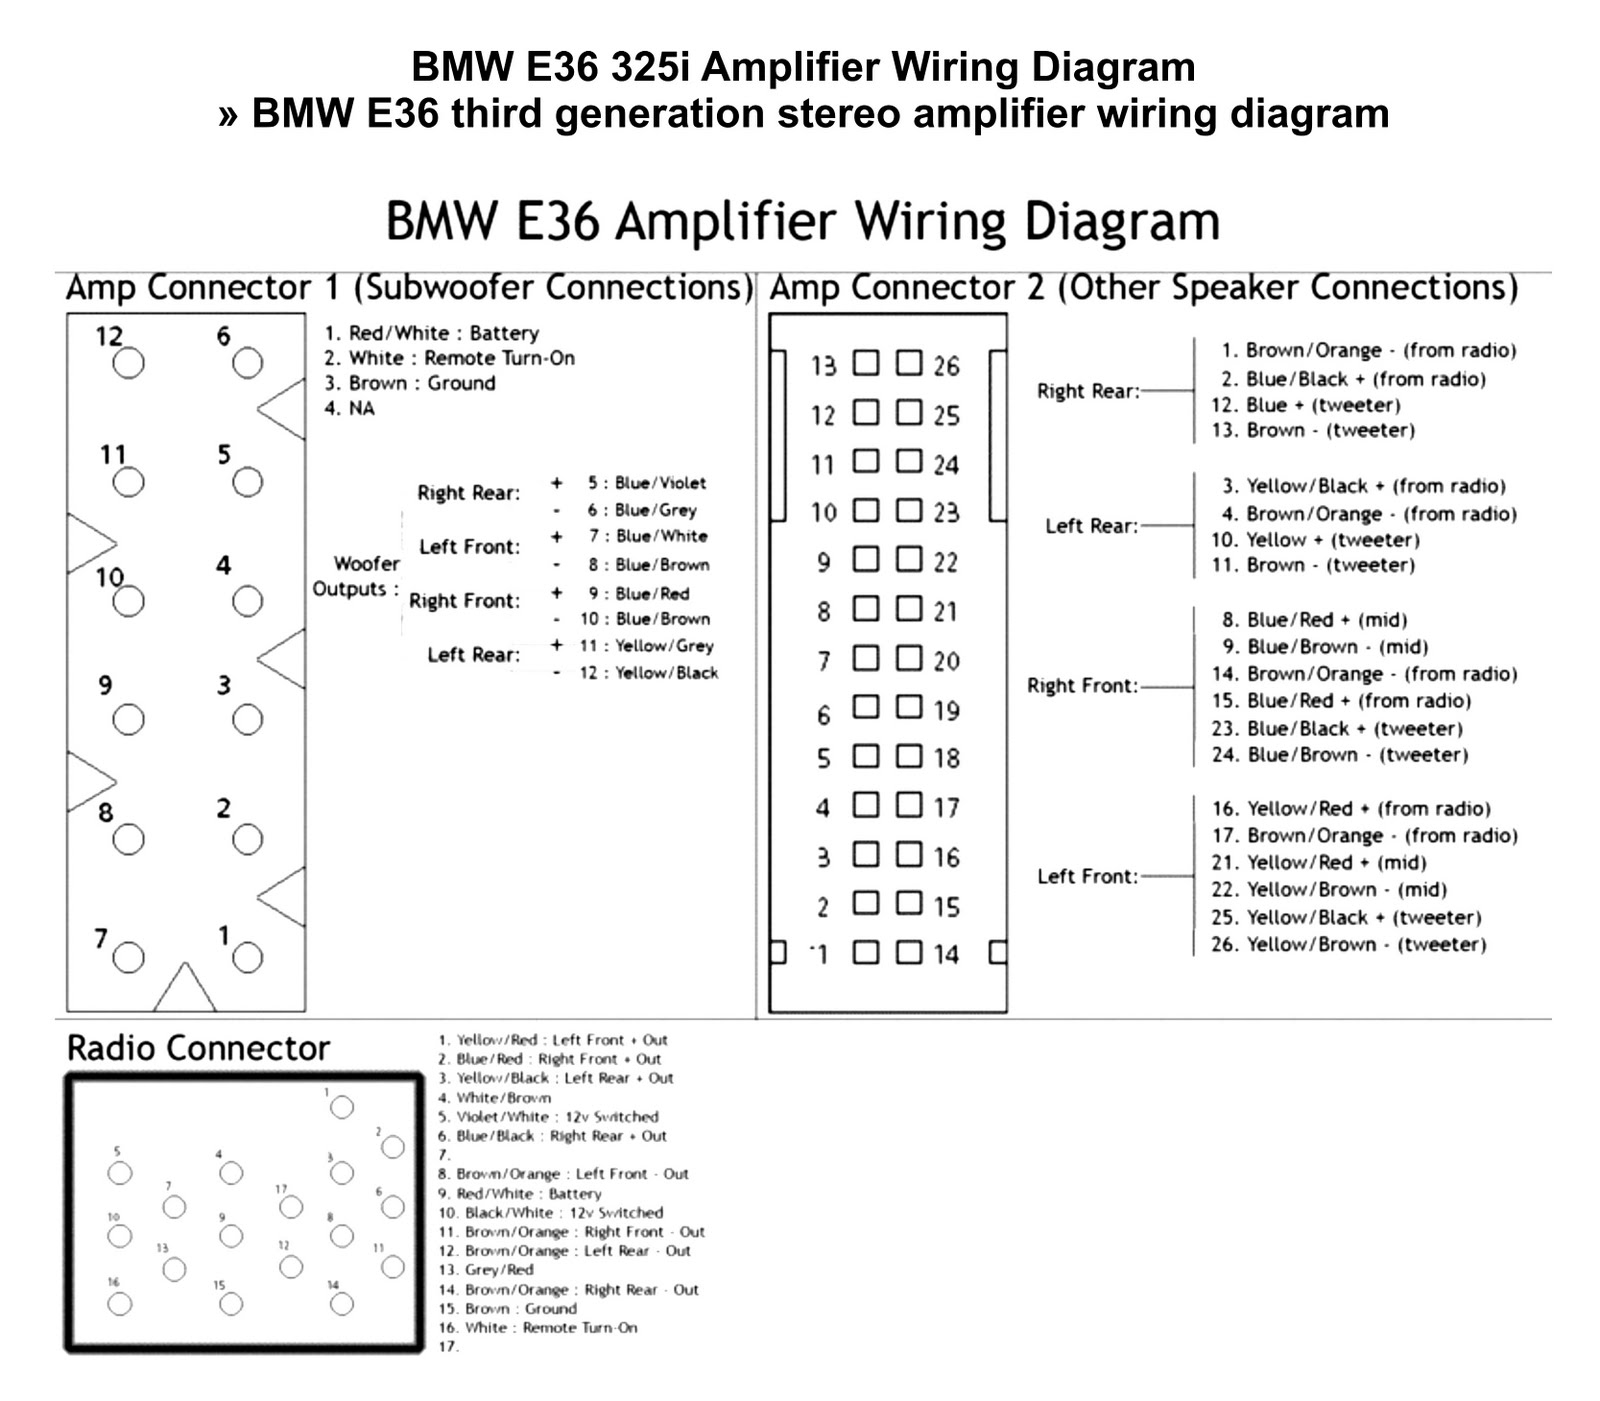 2003 Bmw Z4 Radio Diagram Trusted Wiring Diagrams Fuse Box Harness Product U2022 E46